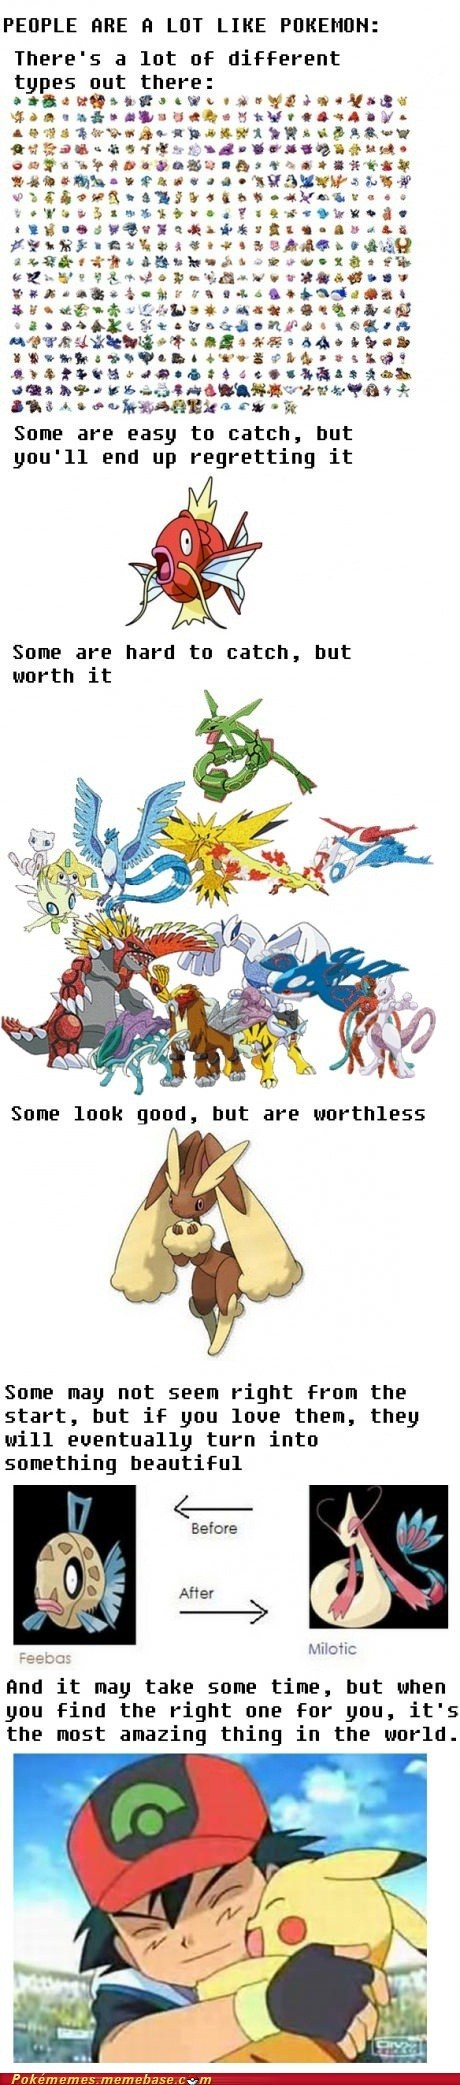 People are a lot like Pokemon